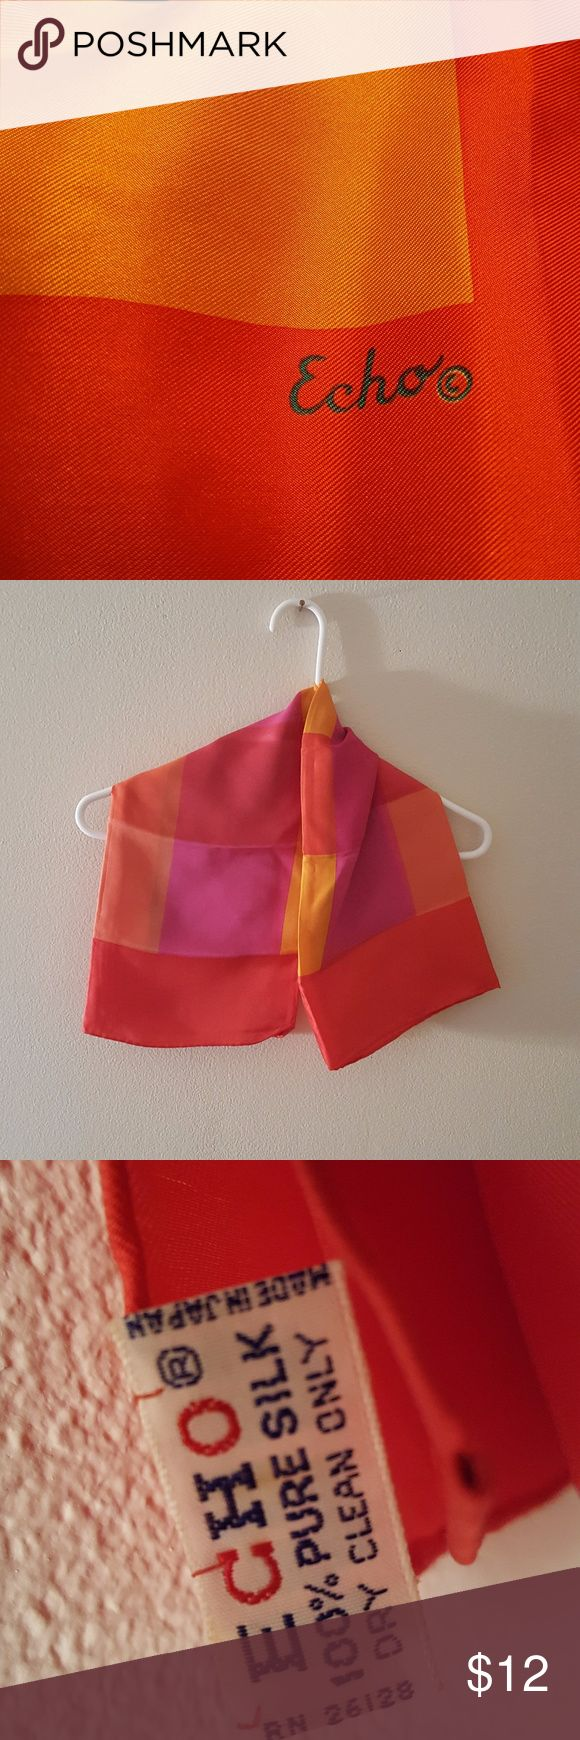 "100% SILK ECHO SCARF GORGEOUS, BRIGHT COLORS OF PINK, RED AND ORANGE.  MEASURES 30"" X 30"". Echo Accessories Scarves & Wraps"